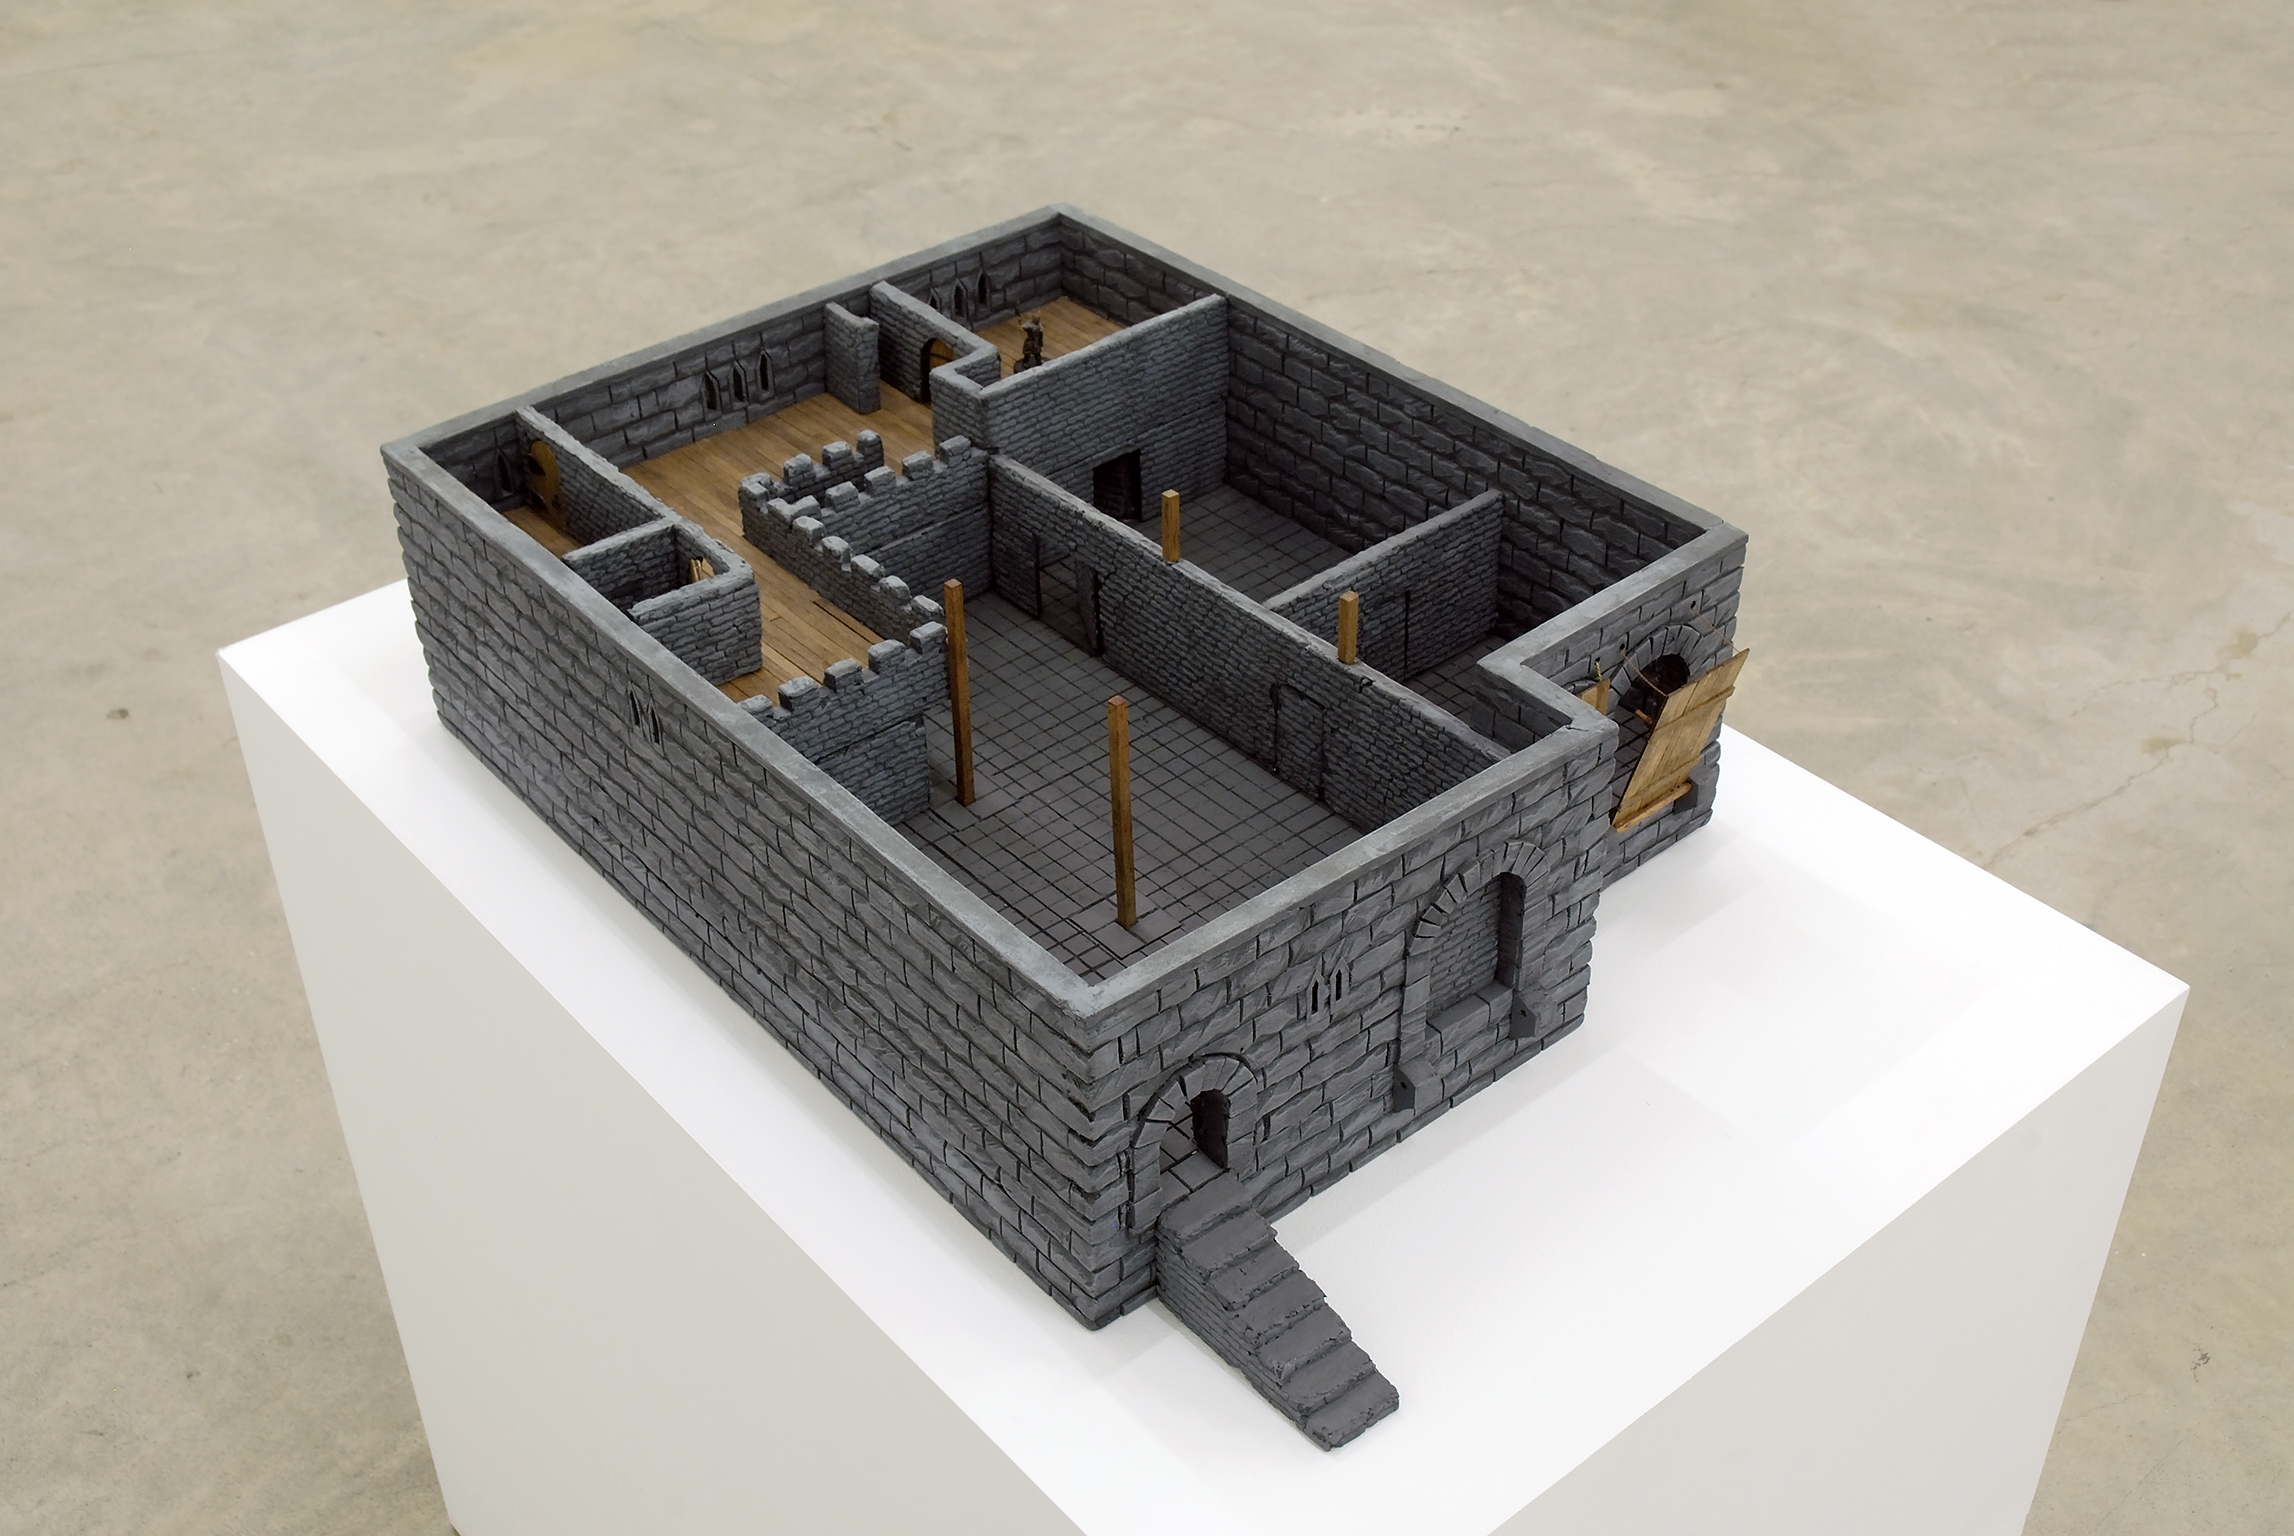 Kevin Schmidt, Dungeon Crawl, 2006, foam, balsa wood, plaster and paint, 12 x 17 x 24 in. (31 x 43 x 61 cm) by